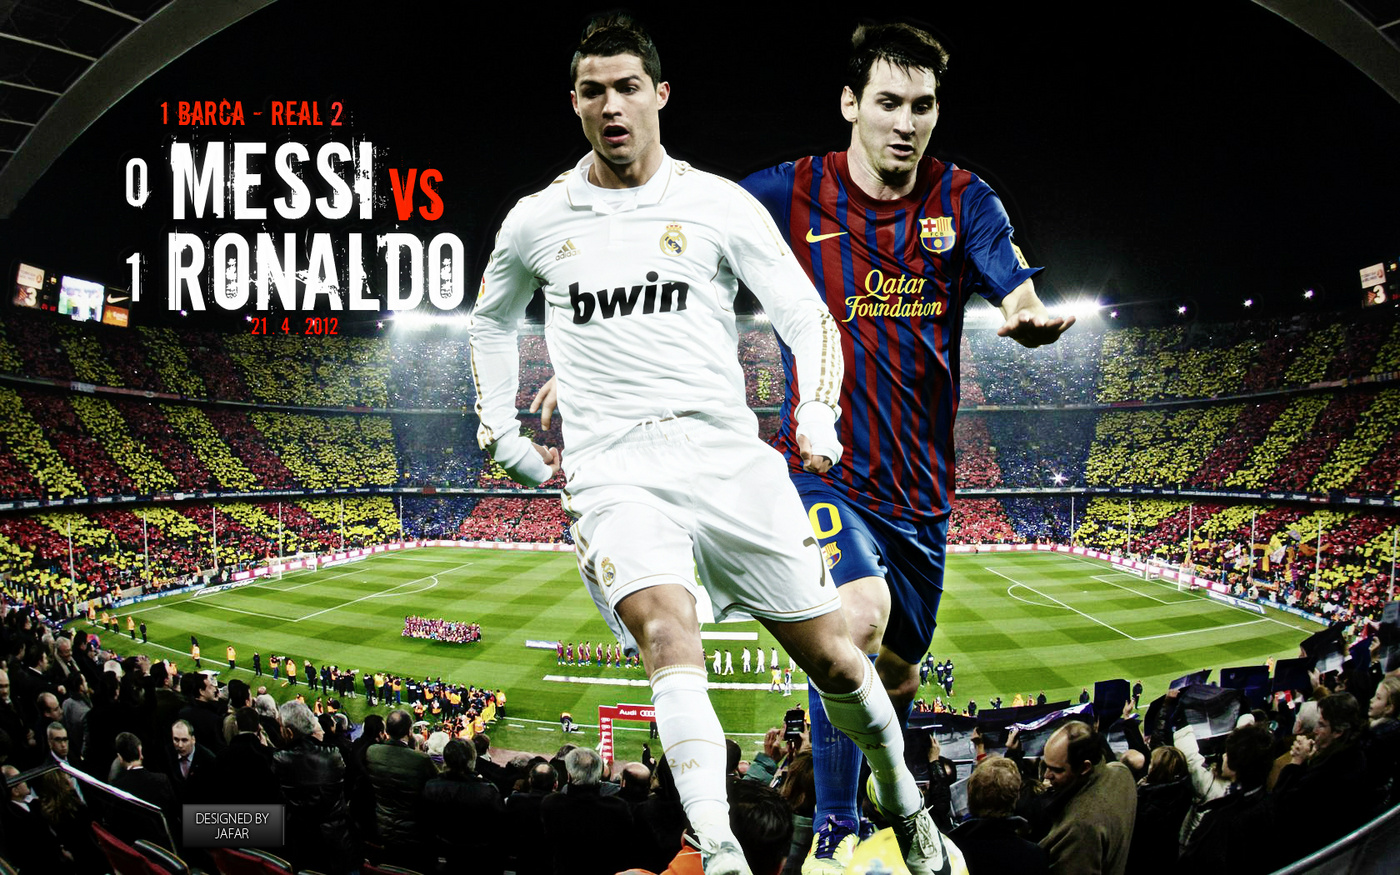 Top Football Wallpapers Messi and Ronaldo Cool Wallpapers 2012 1400x875